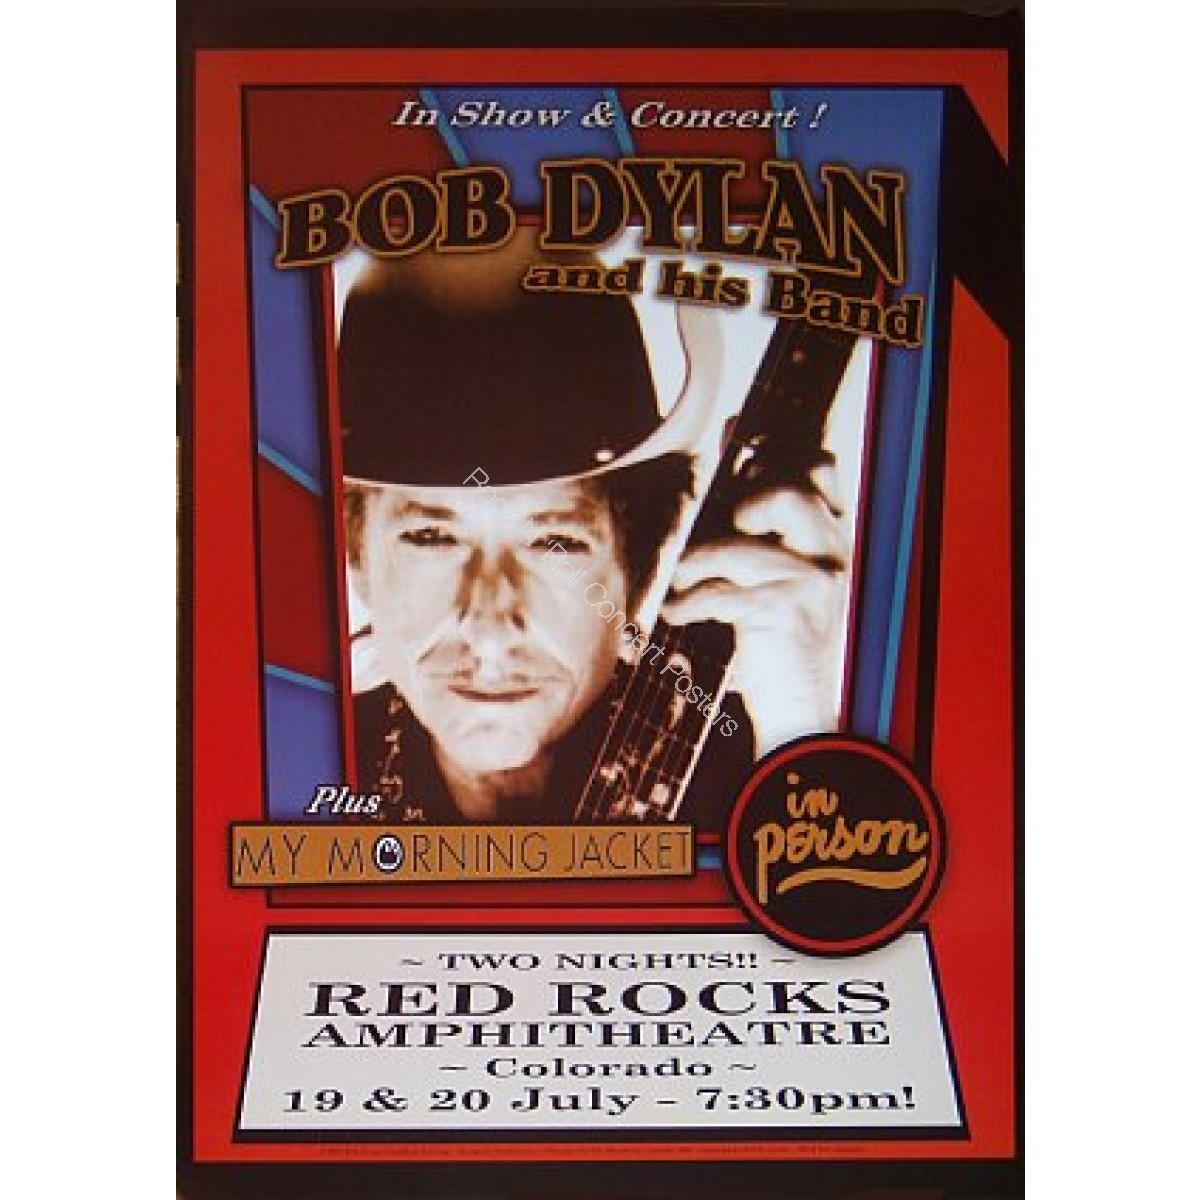 Bob Dylan + My Morning Jacket Red Rocks 2007 Official limited Edition Print of 200